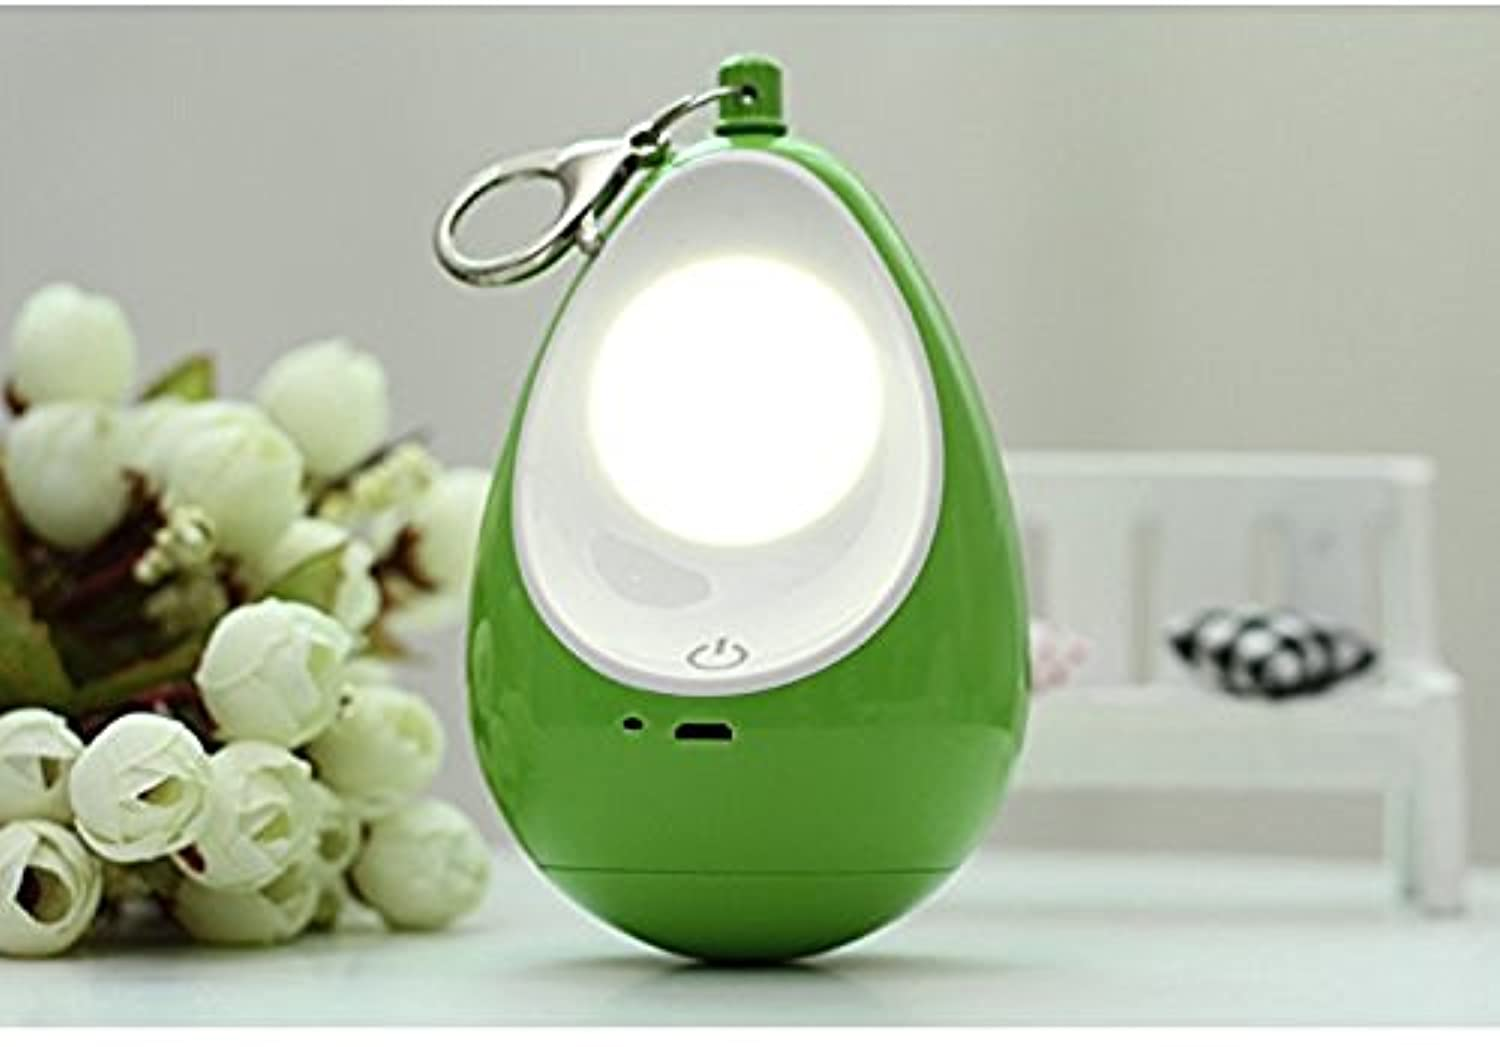 XJoel 3 Modes Rechargeable LED Camping Lantern Emergency Light Dimmable Tent Lamp Bright 100 Lumen Green